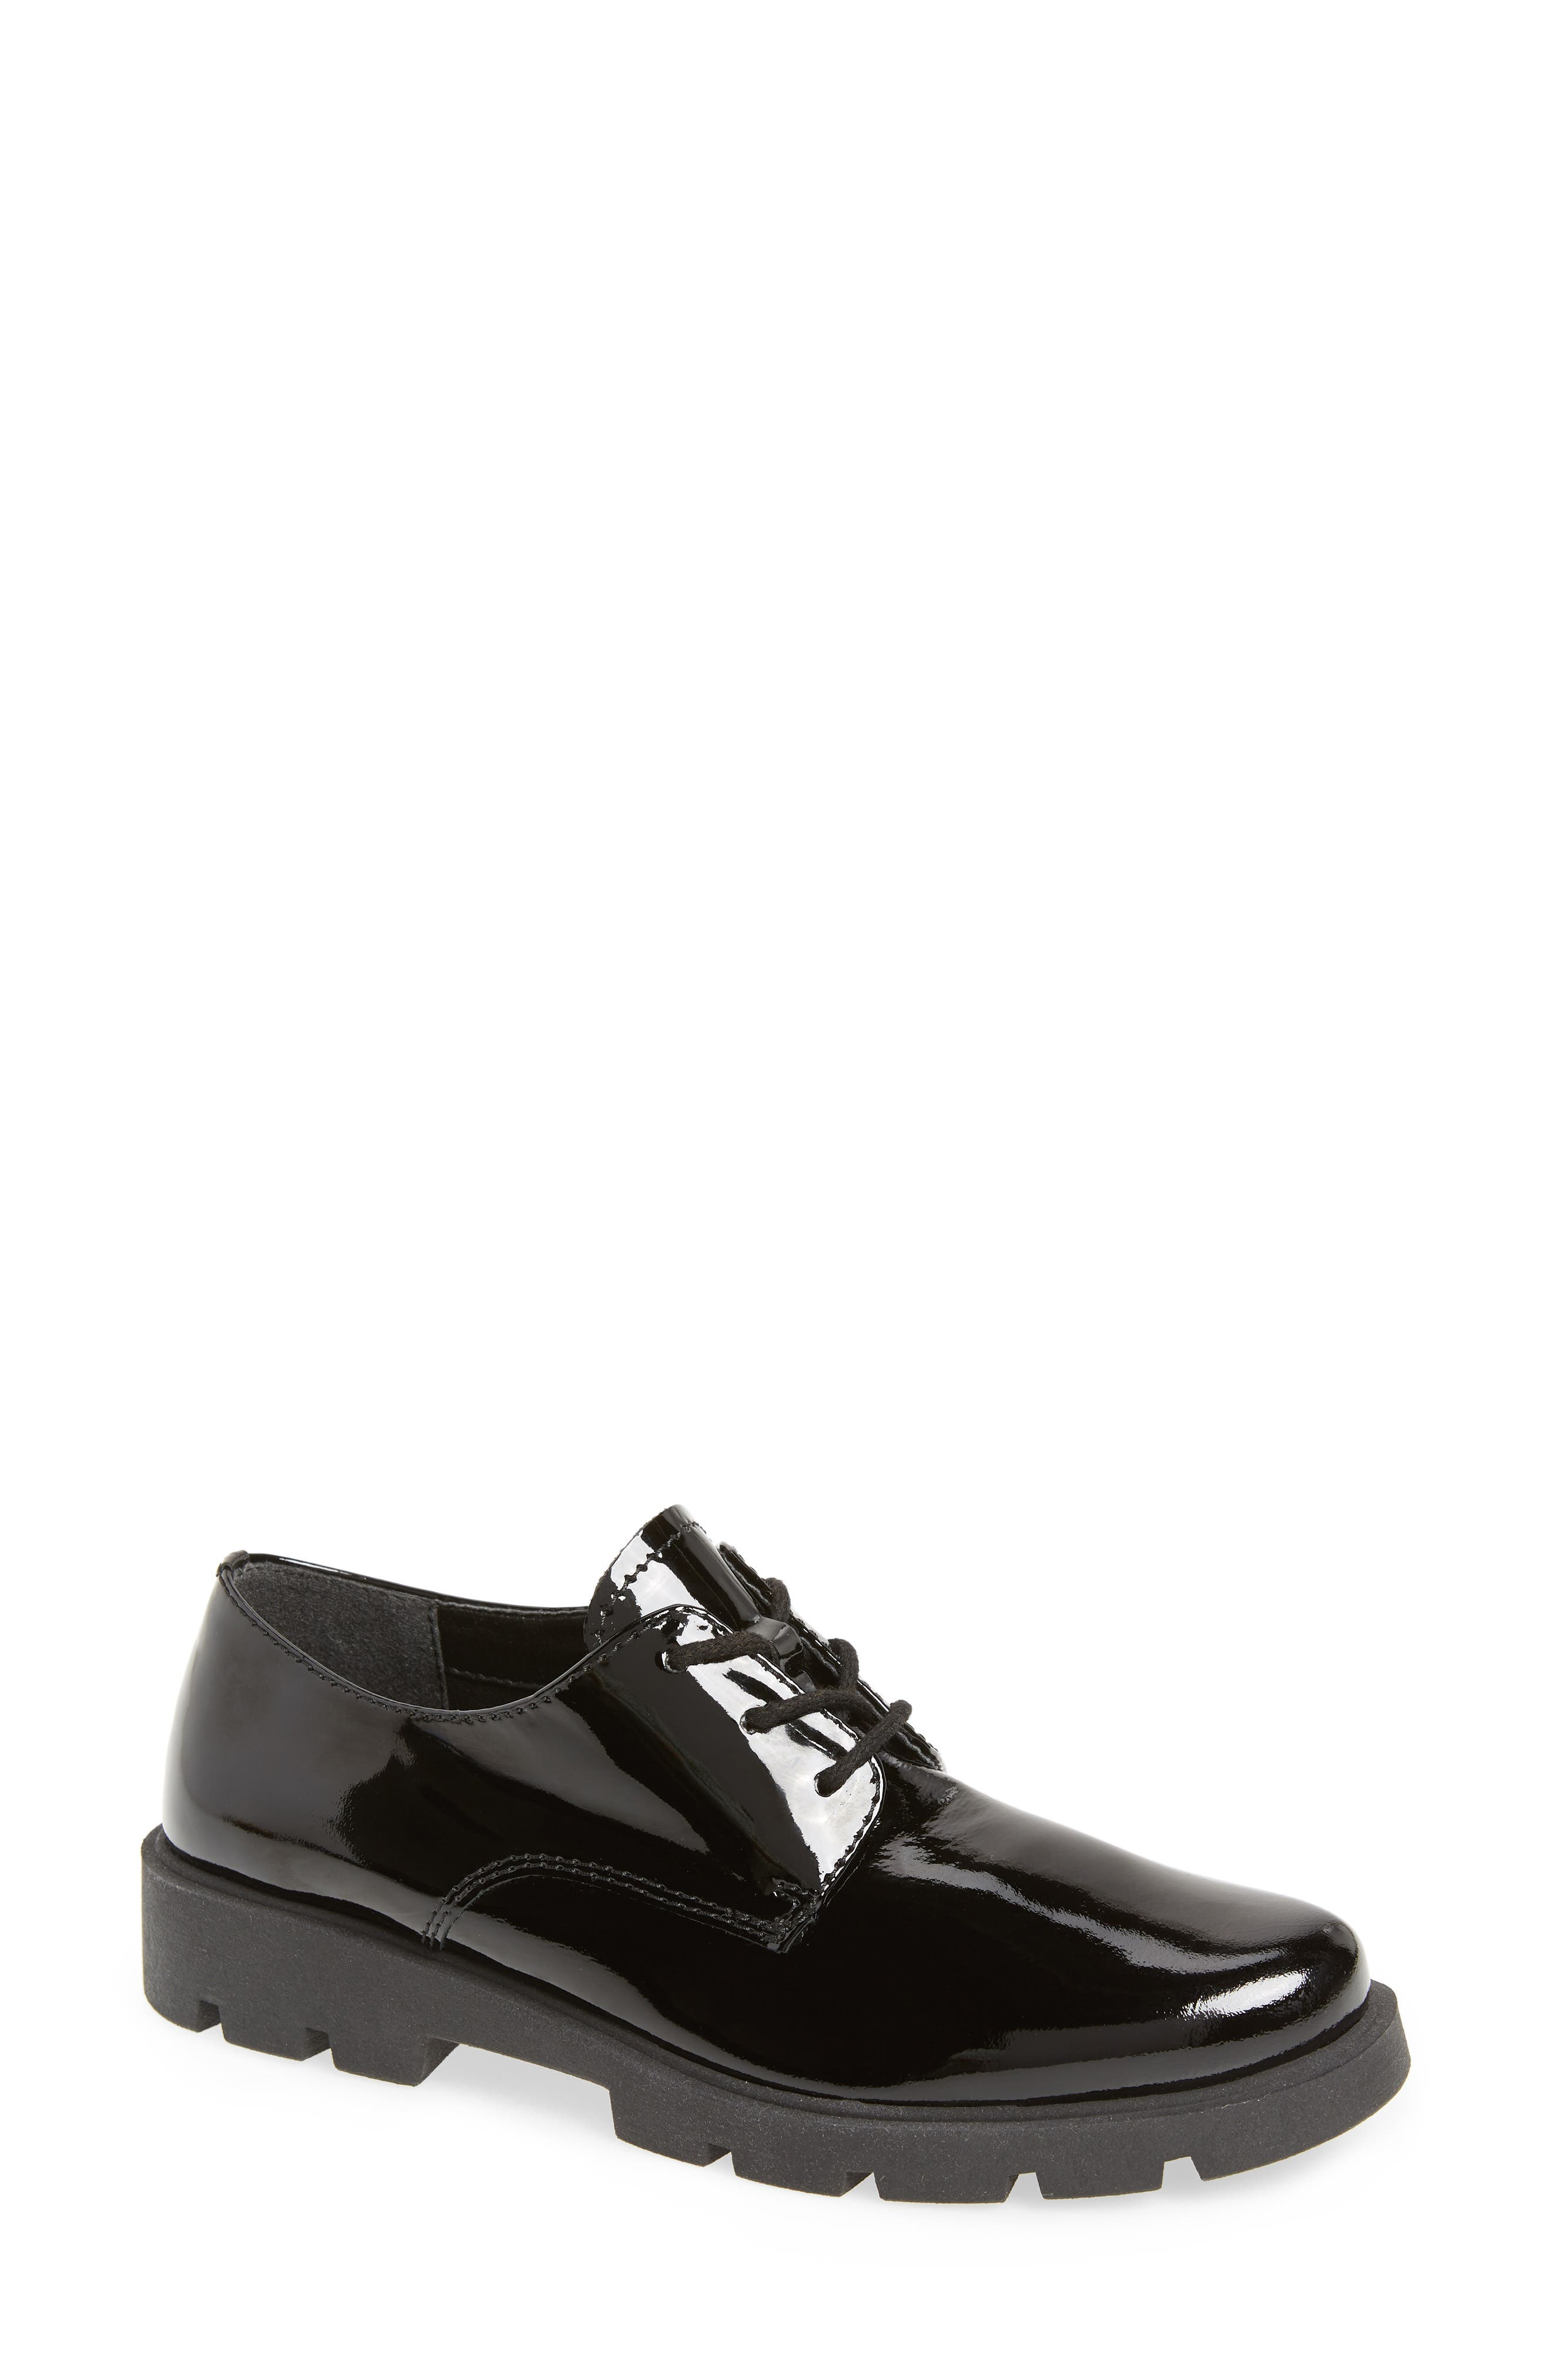 People Mover Derby,                         Main,                         color, BLACK PATENT LEATHER